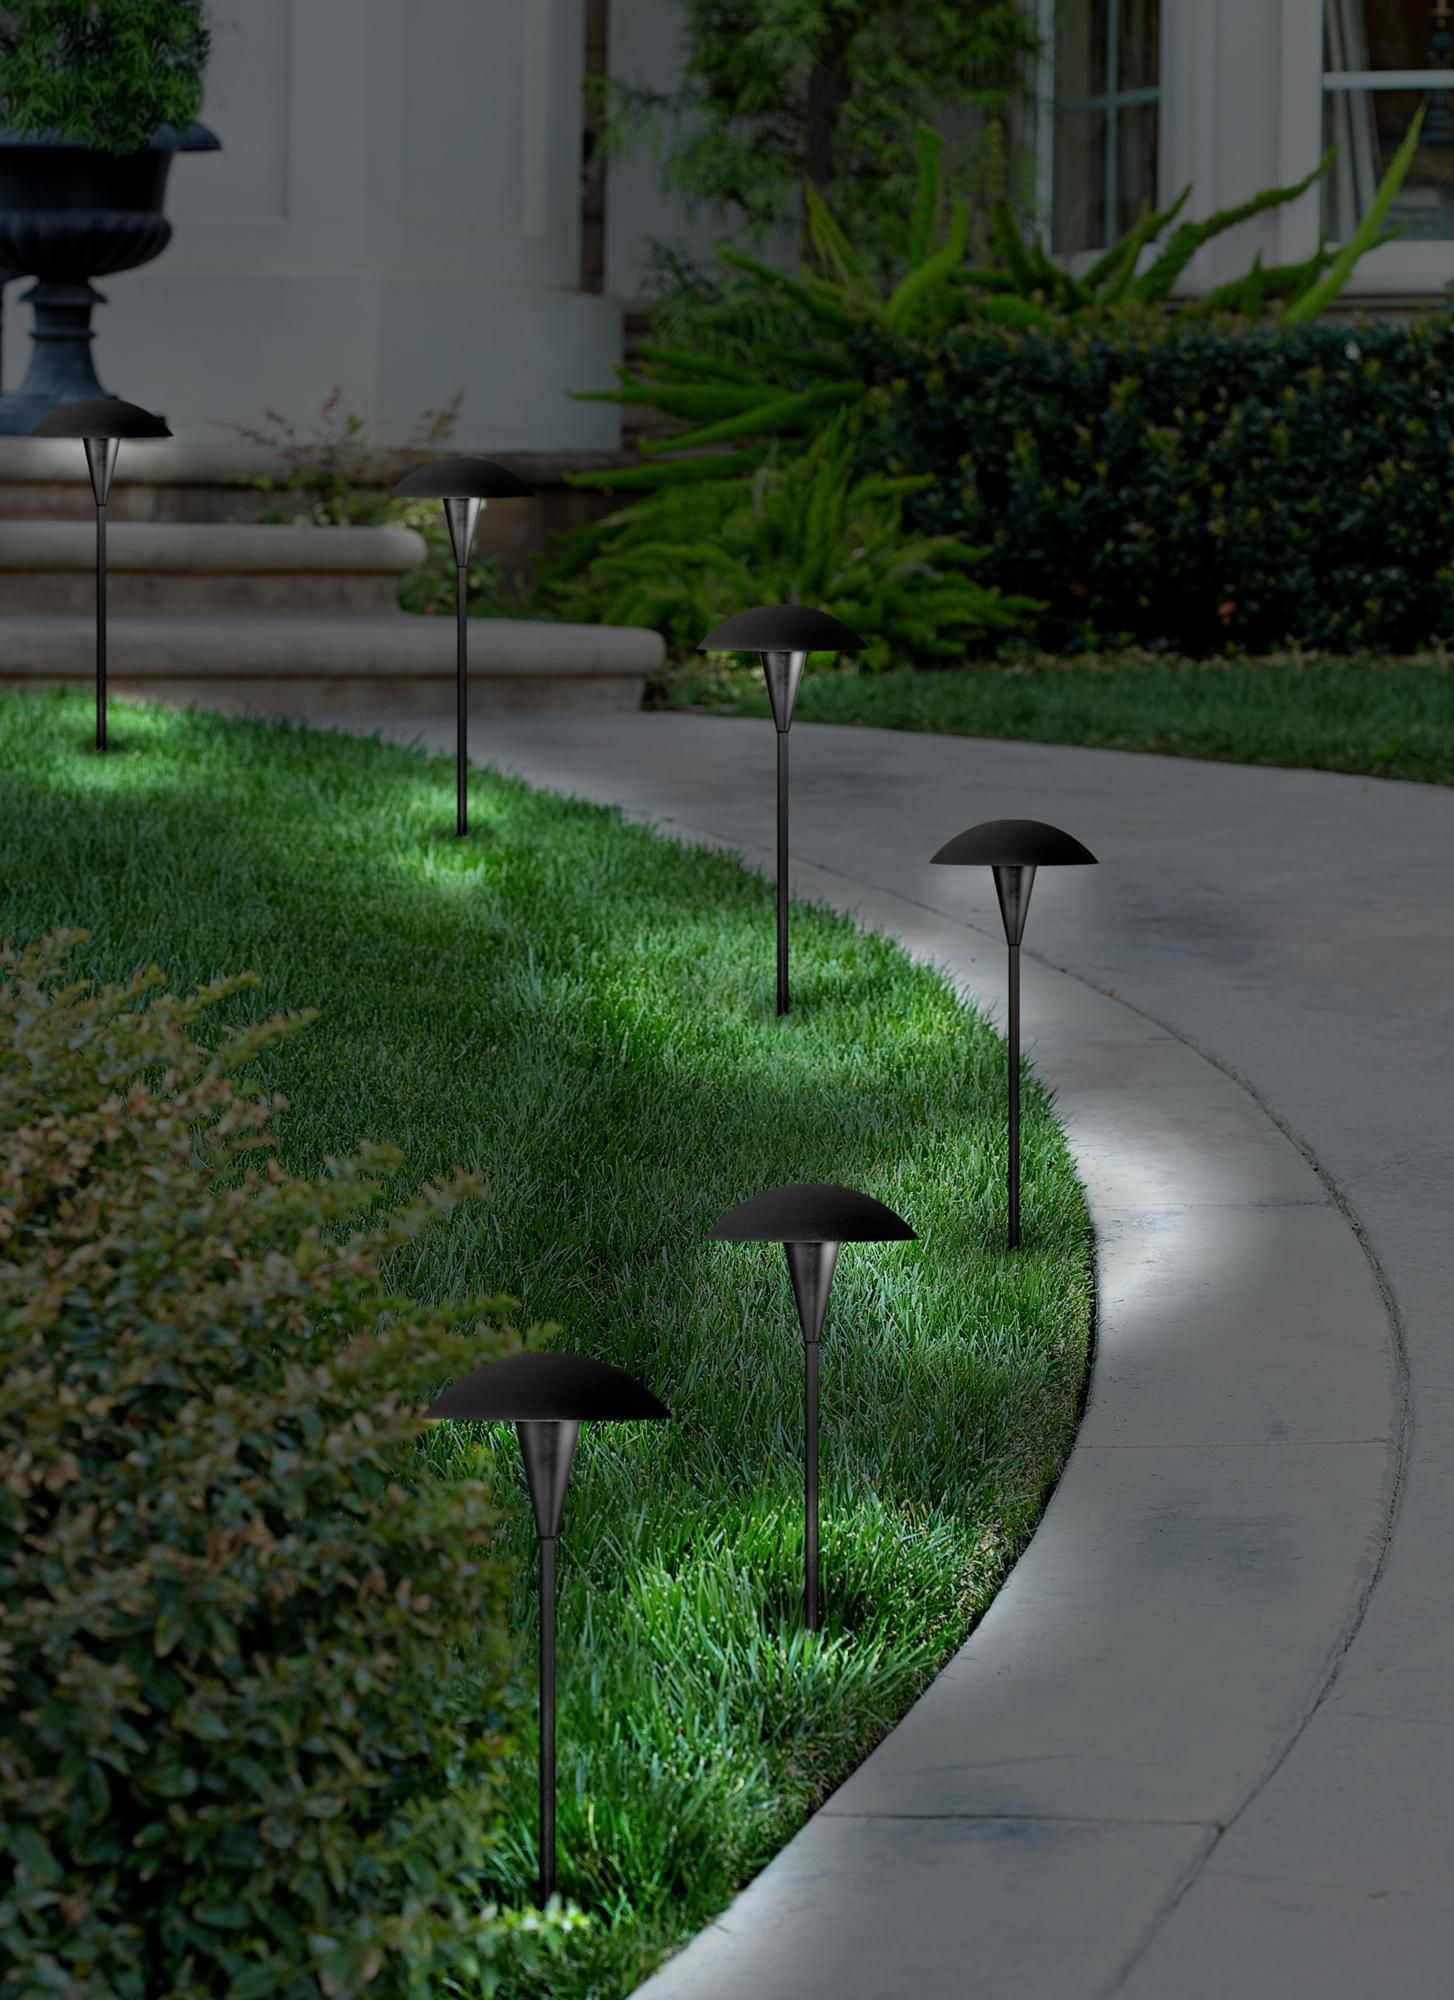 Mushroom Black 8 Piece Outdoor Led Landscape Lighting Set 17e59 Lamps Plus Led Landscape Lighting Outdoor Landscape Lighting Landscape Lighting Kits